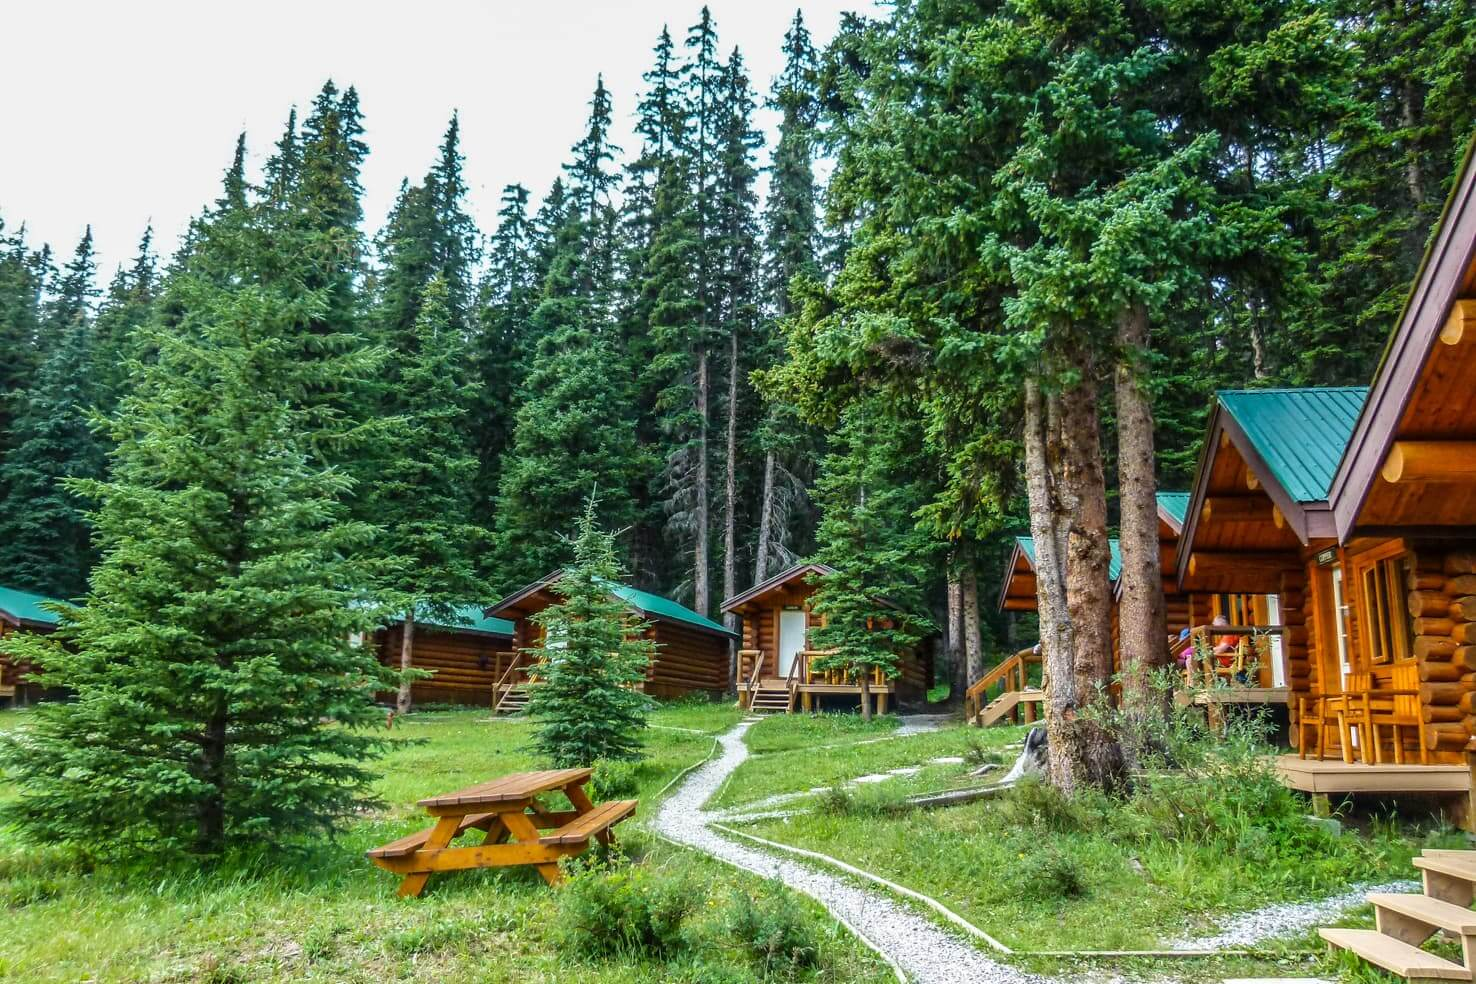 100 best things to do in Banff National Park, Canada - Hike & stay in cabins at Shadow Lake_